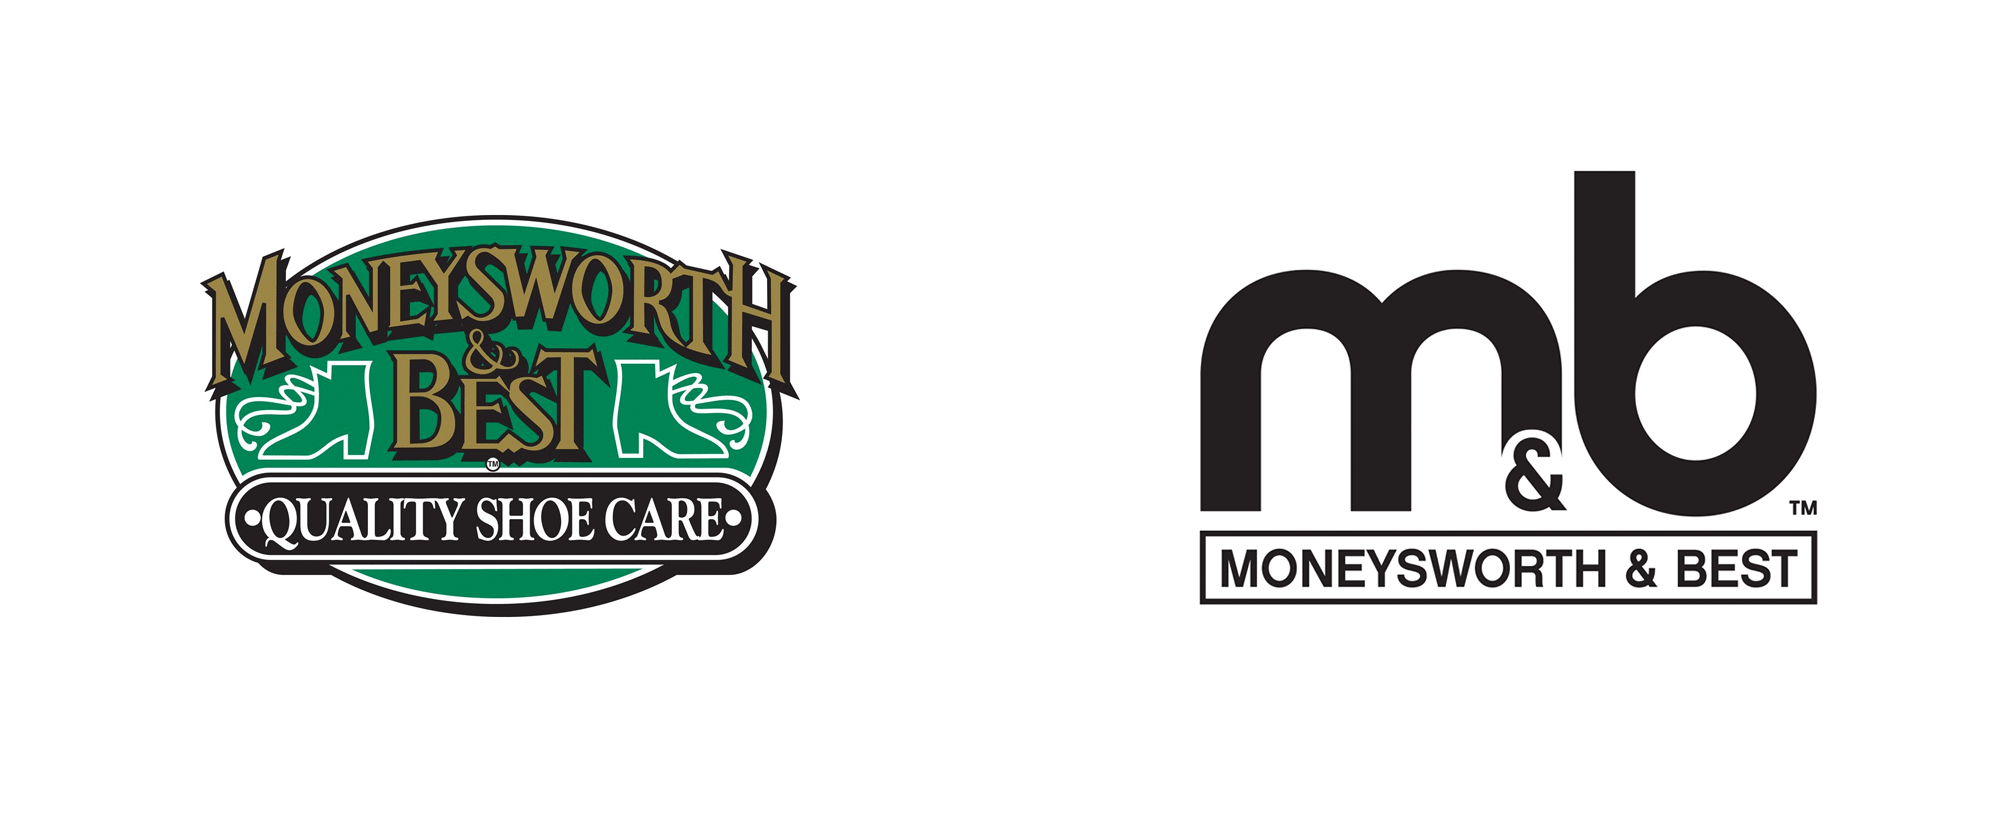 New Logo and Packaging for Moneysworth & Best